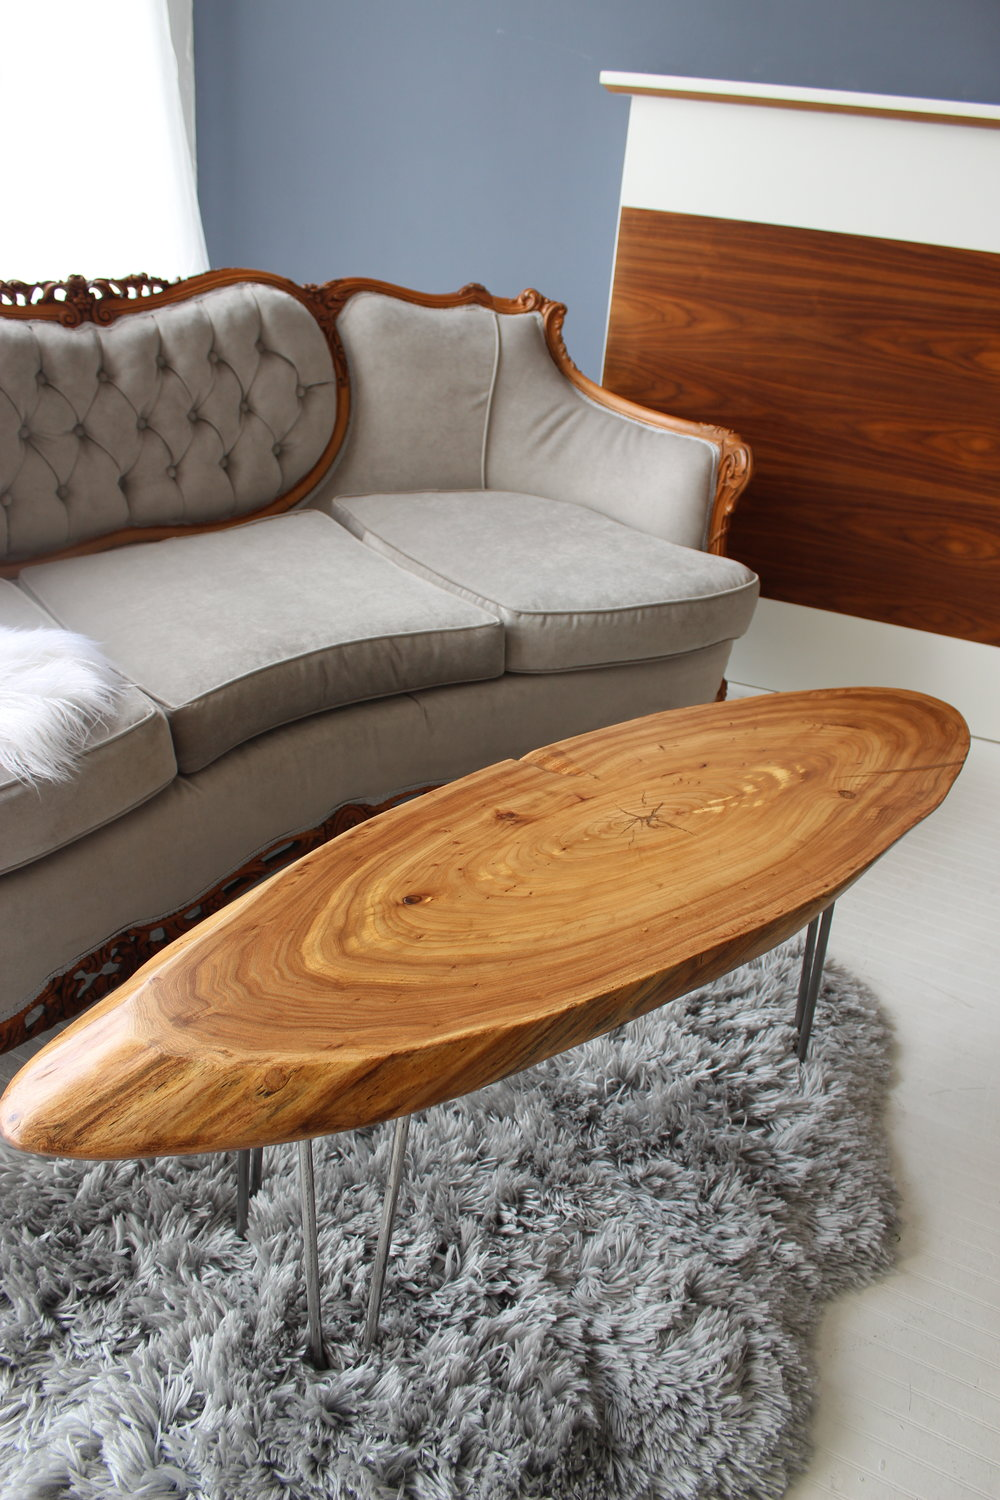 ELLIPSE, coffee and sofa tables - Available in rich Walnut and Siberian Elm